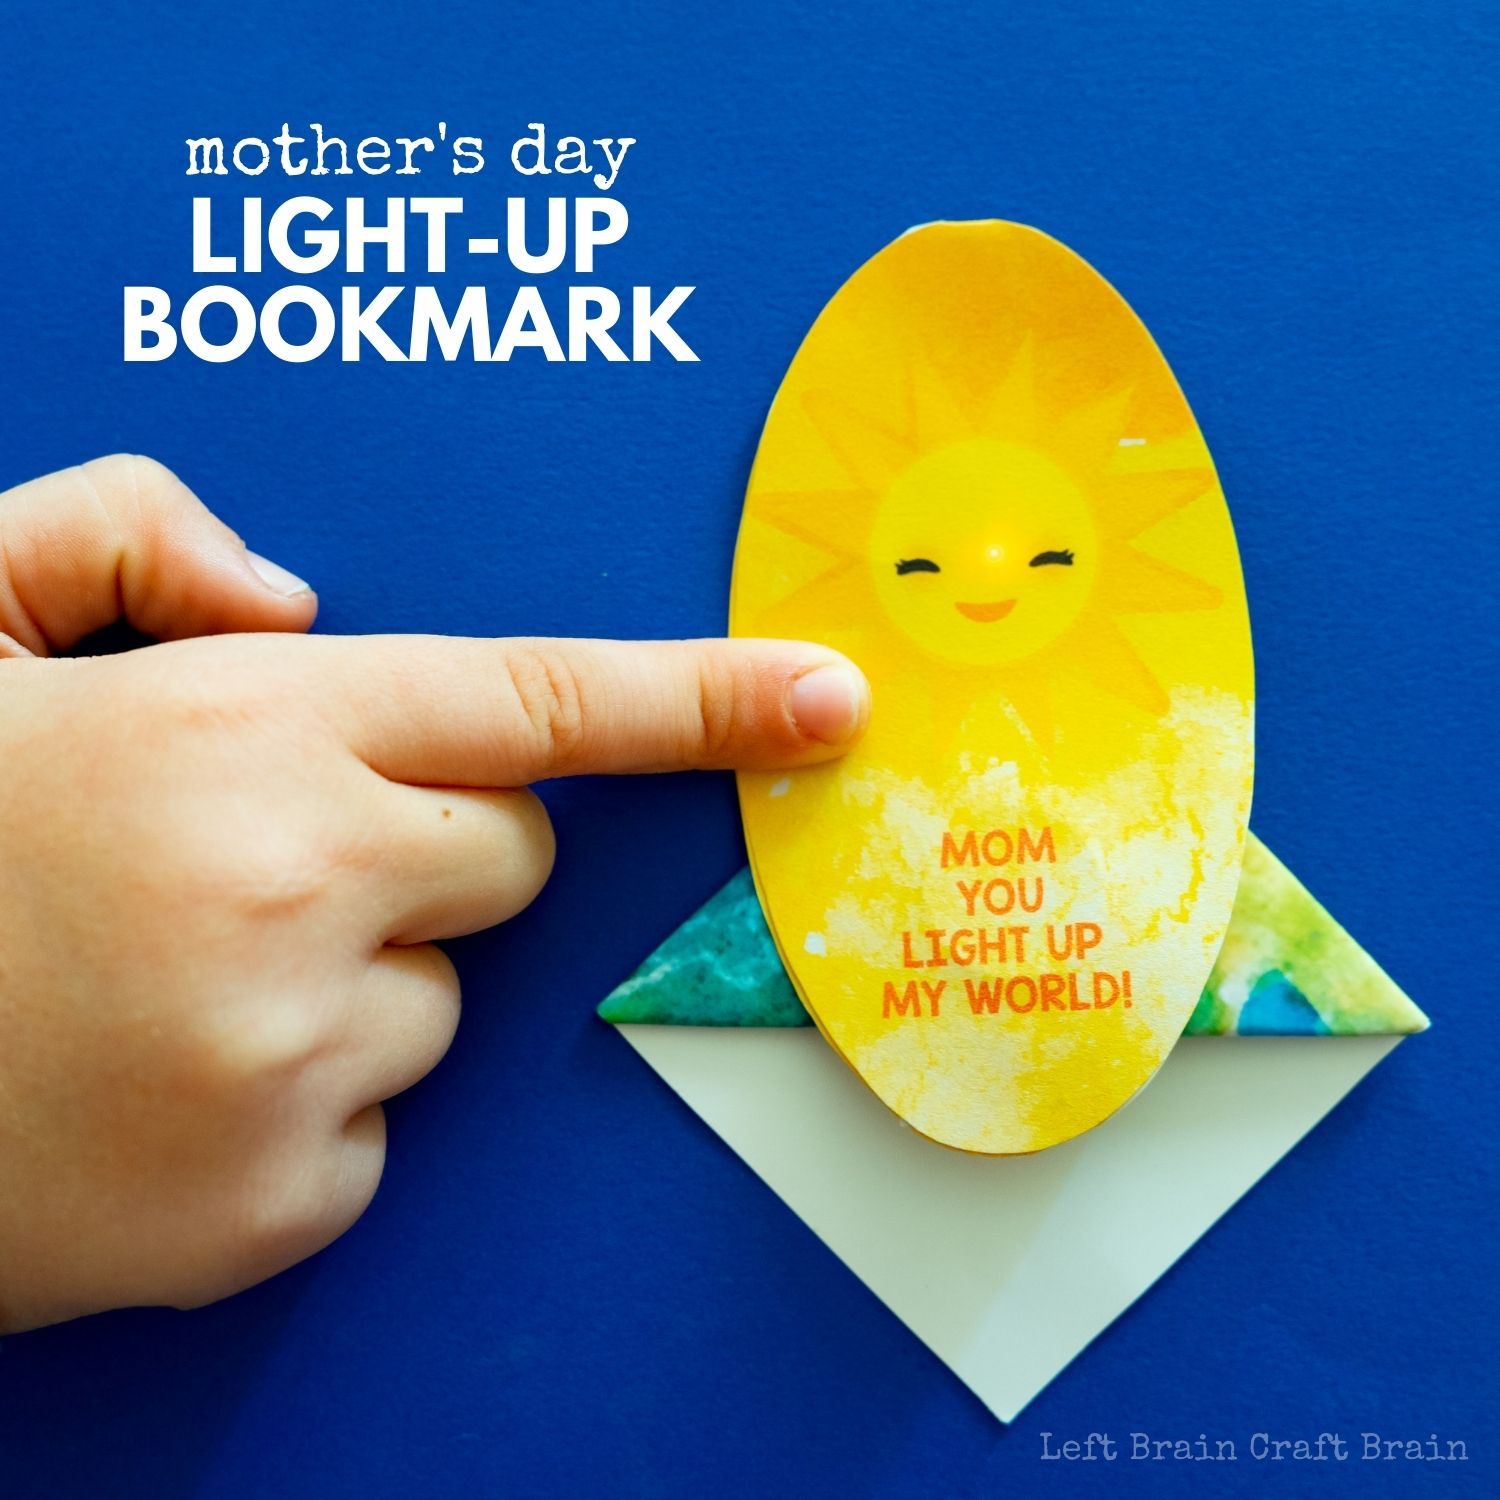 Make mom a unique gift by crafting this Mother's Day Light-up Bookmark for her. It's a great STEM project to learn about electricity and origami.